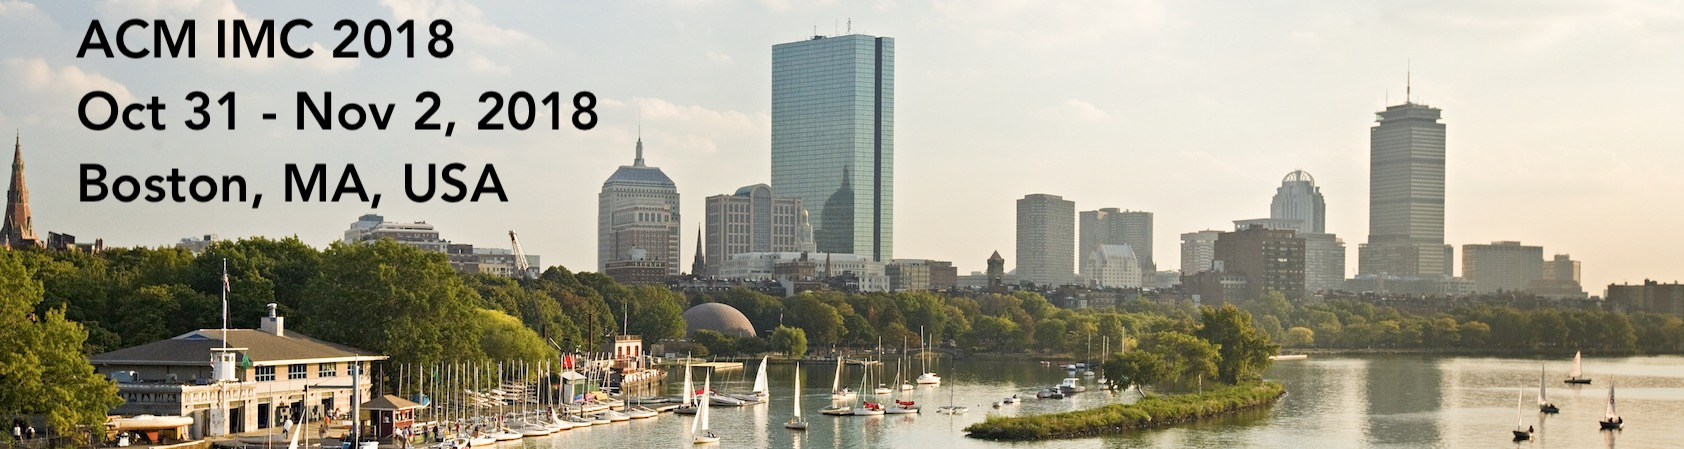 Conference In Boston Wednesday November >> Acm Imc 2018